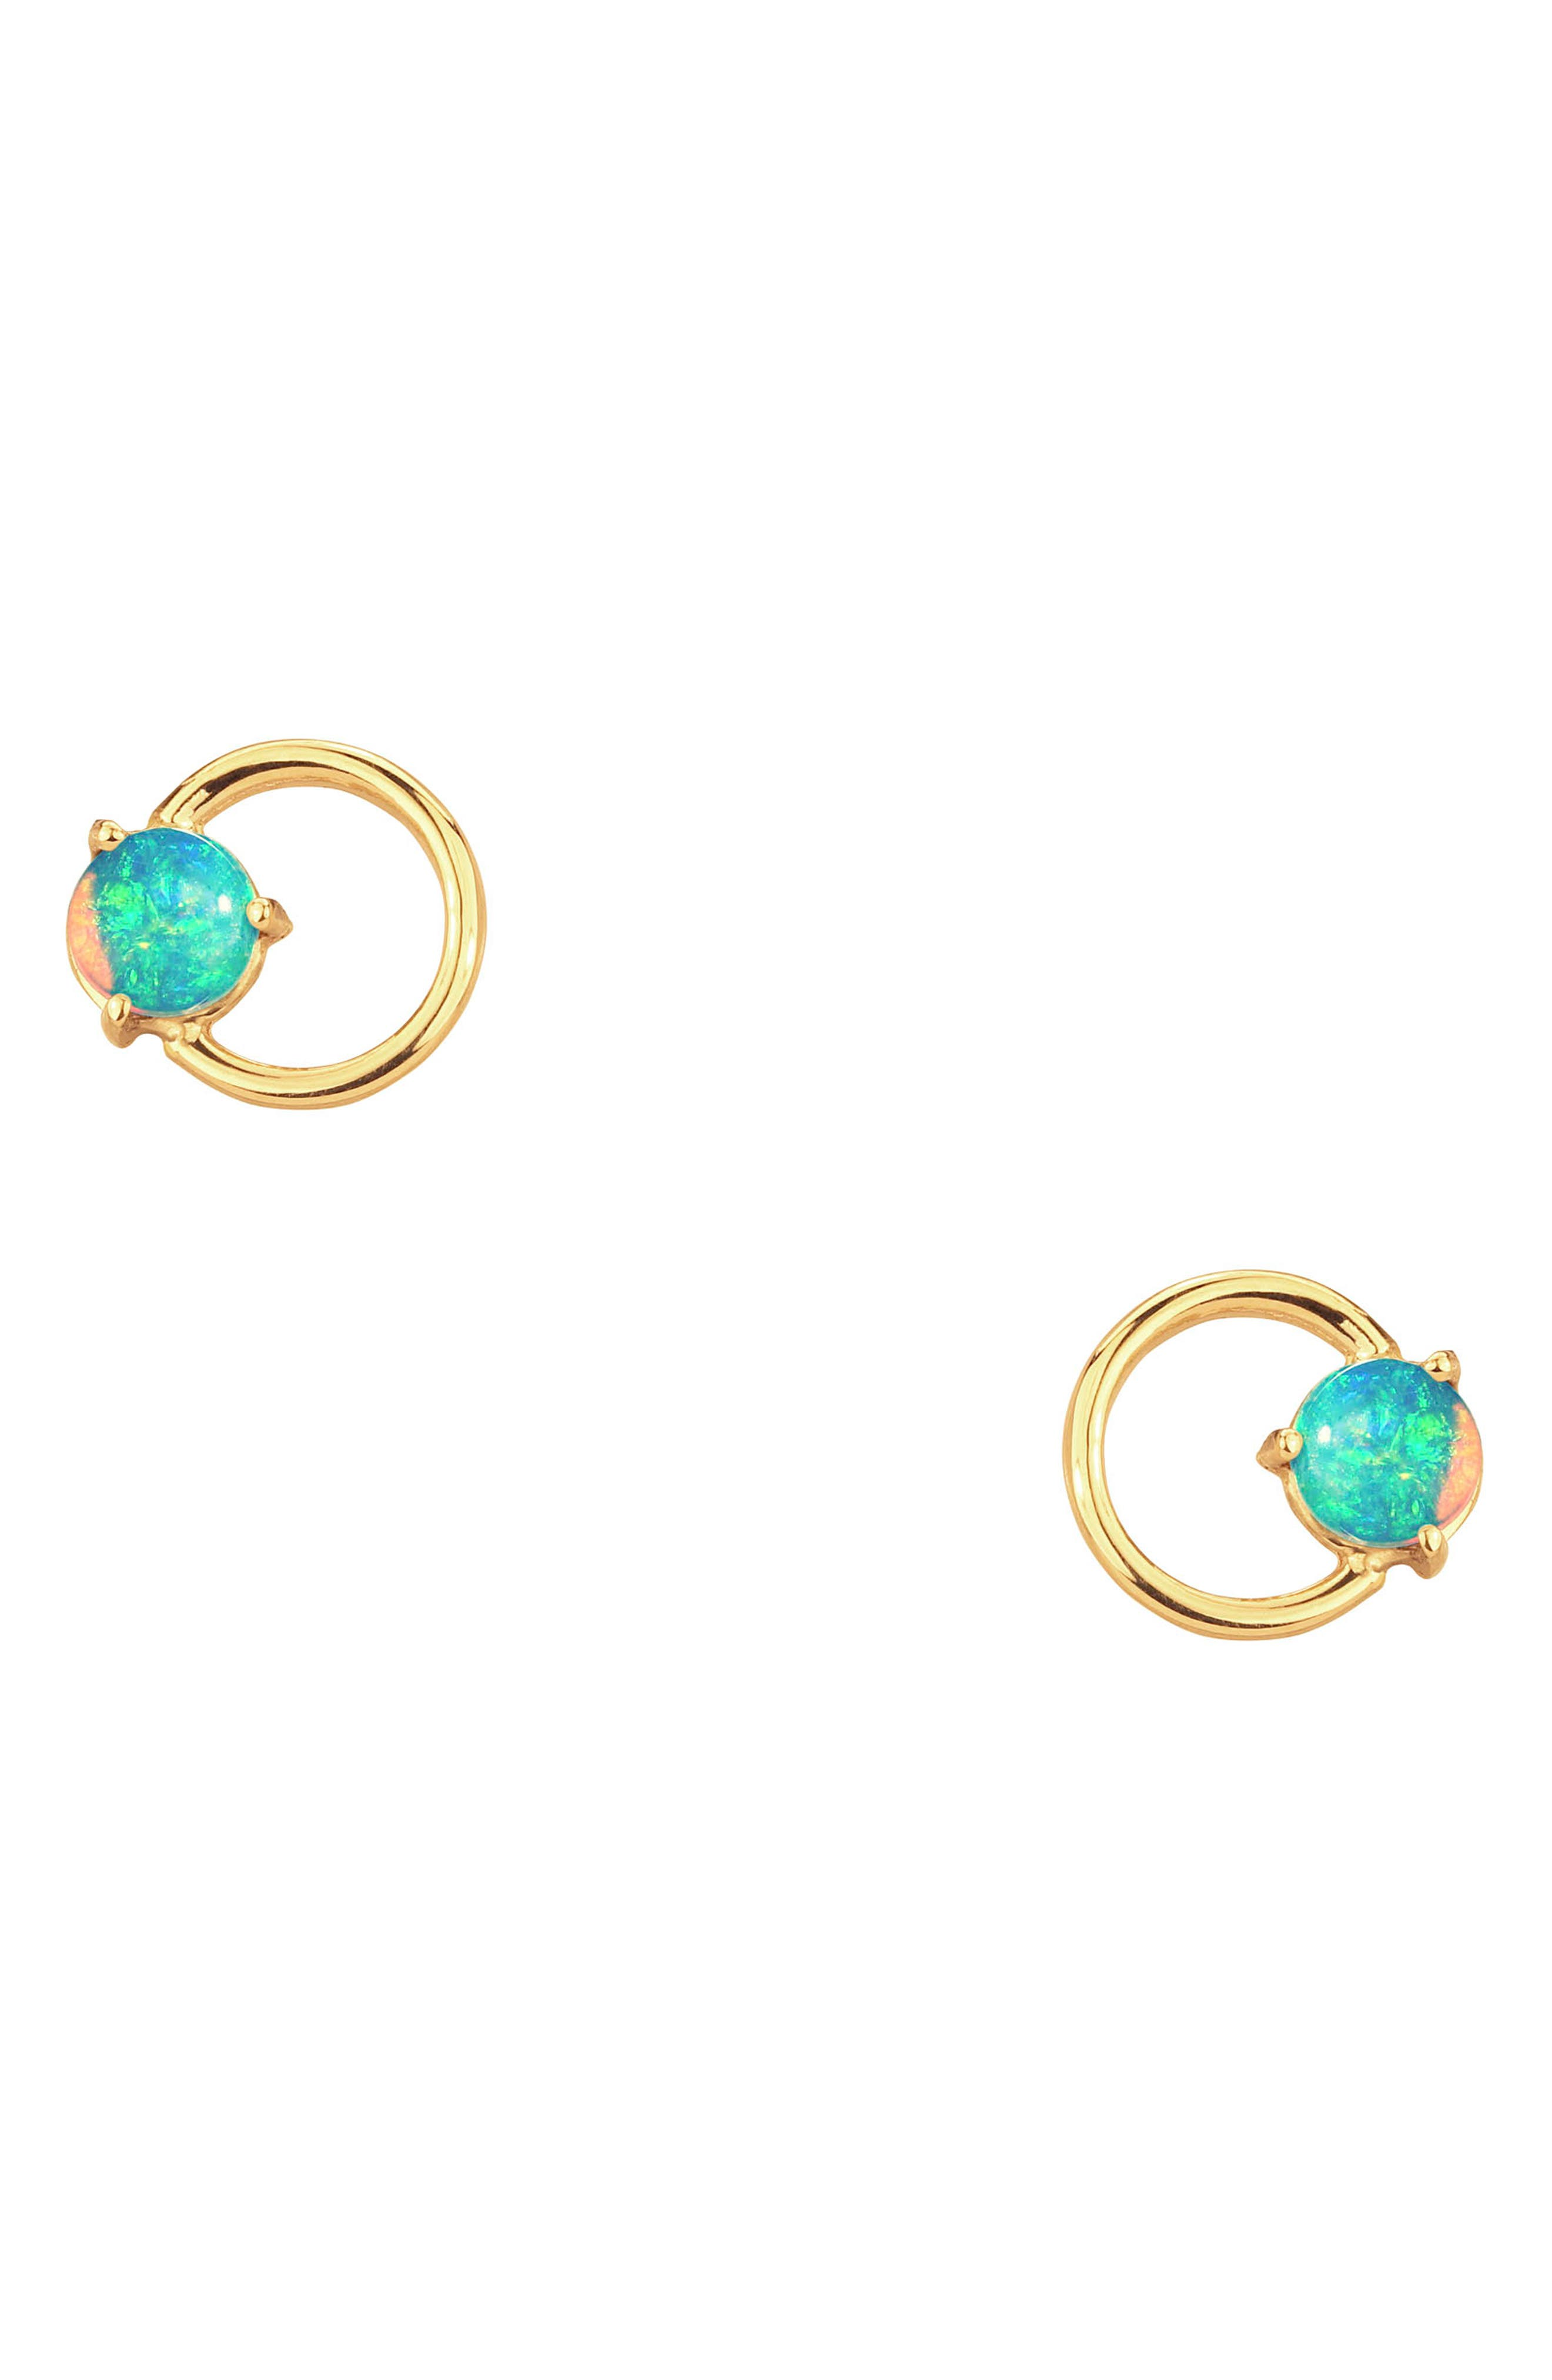 Large Opal Circle Stud Earrings,                         Main,                         color, 14KT GOLD